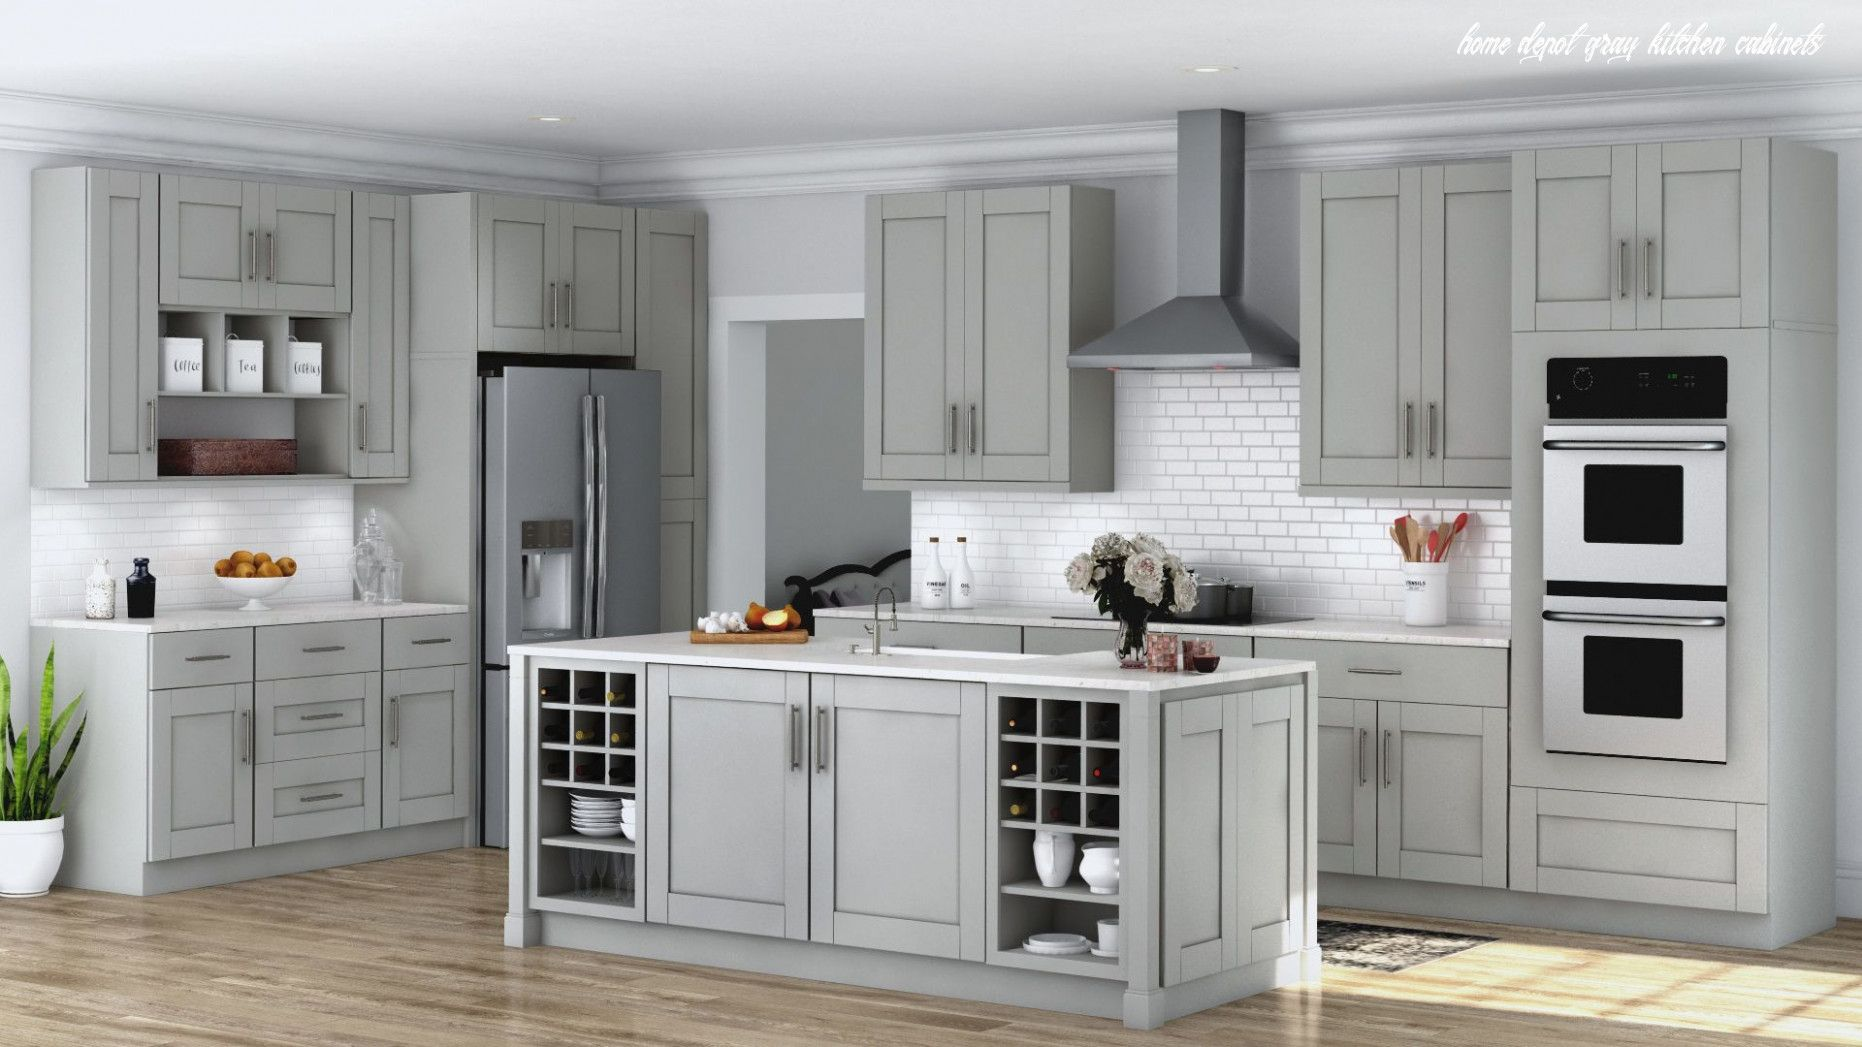 Home Depot Gray Kitchen Cabinets Is So Famous But Why In 2020 Home Depot Cabinets Home Depot Kitchen Kitchen Cabinets For Sale